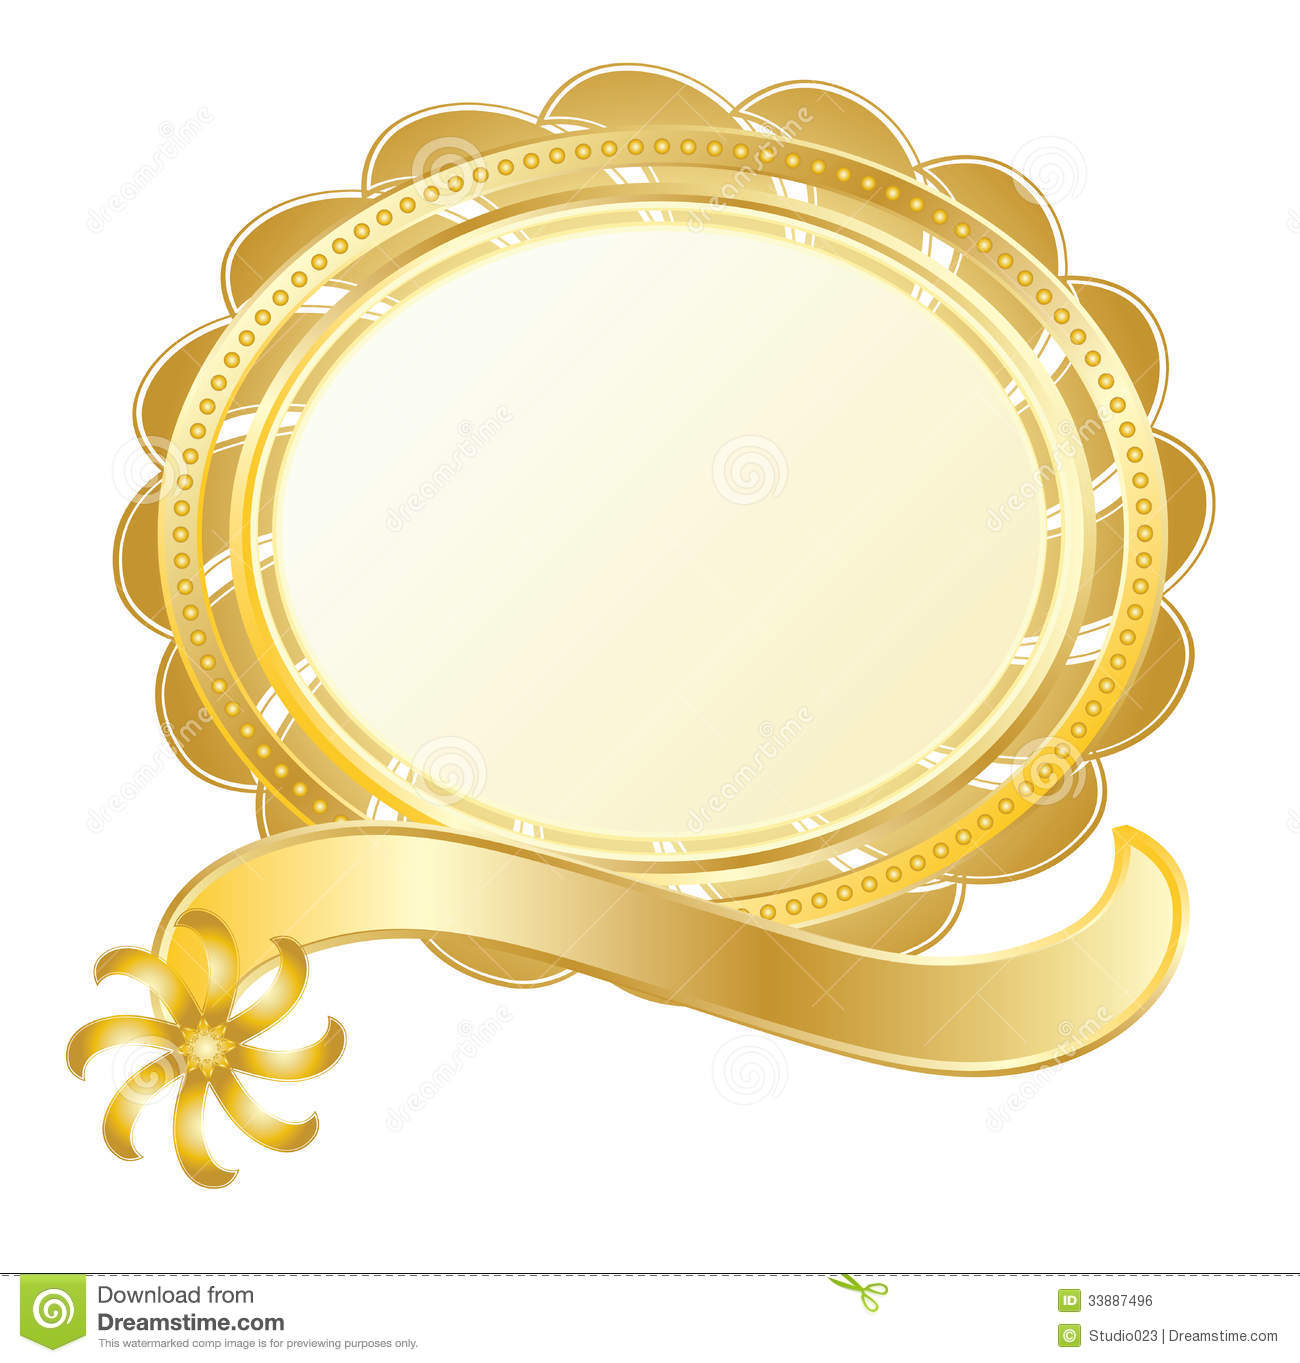 Gold Stamp Royalty Free Stock Image - Image: 33887496